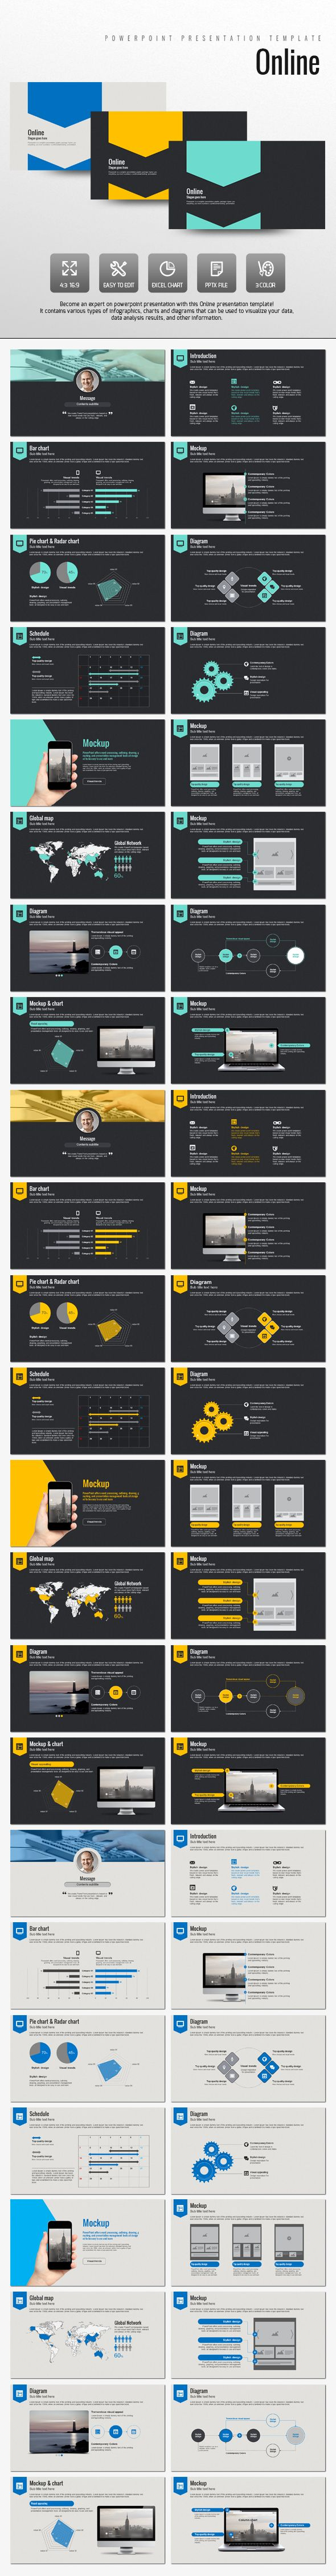 Online PowerPoint Presentation Template #design #slides Download: http://graphicriver.net/item/online/14000926?ref=ksioks